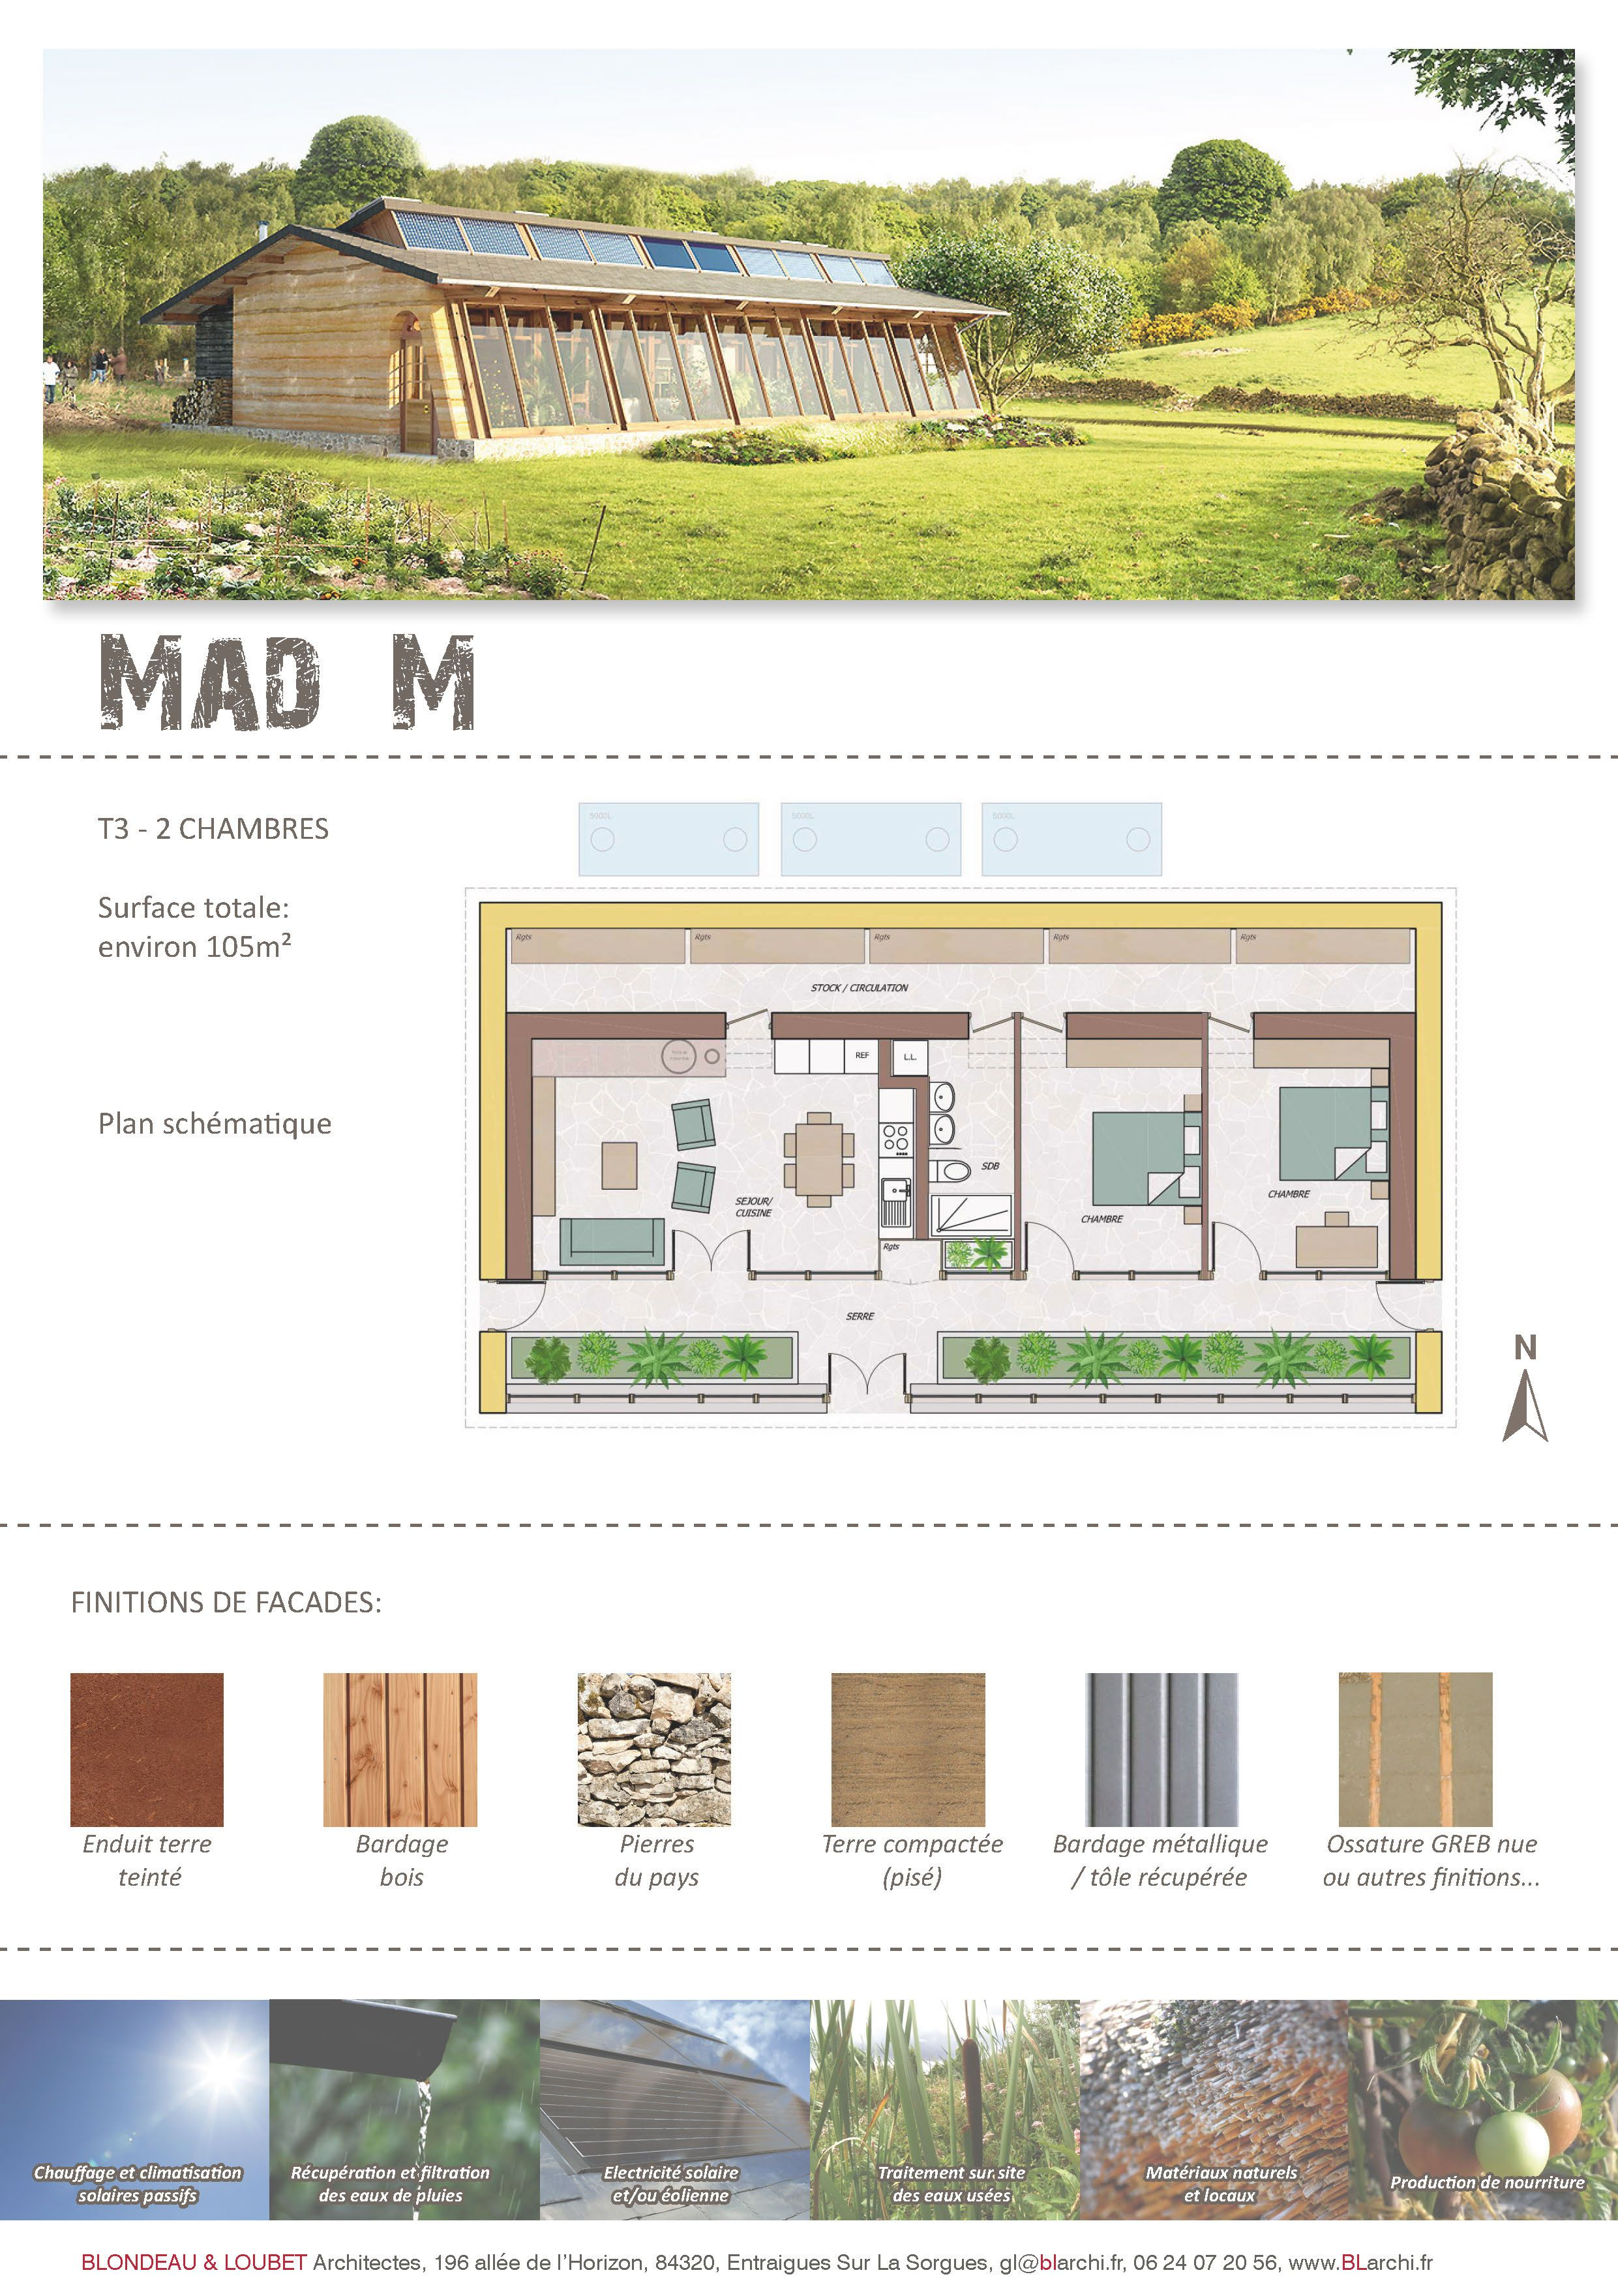 Earthship plans and designs pictures - Mad M Earthship 2 Chambres More